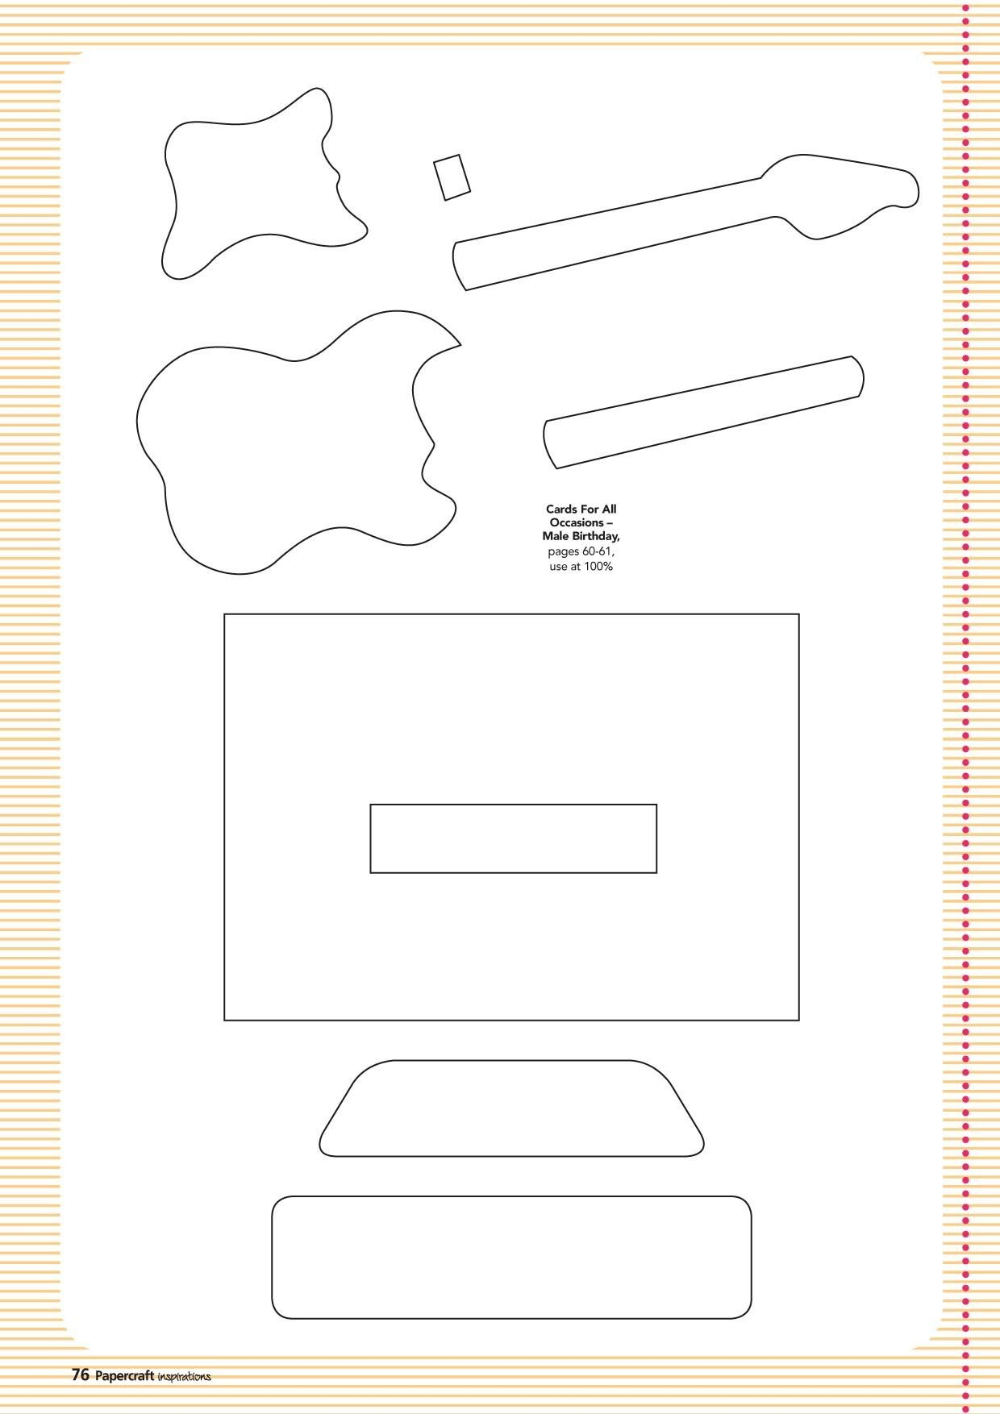 Free Guitar Template Paper From Wwwpapercraftinspirationsmagazine With Printable Pop Up Card Pop Up Card Templates Templates Printable Free Card Templates Free